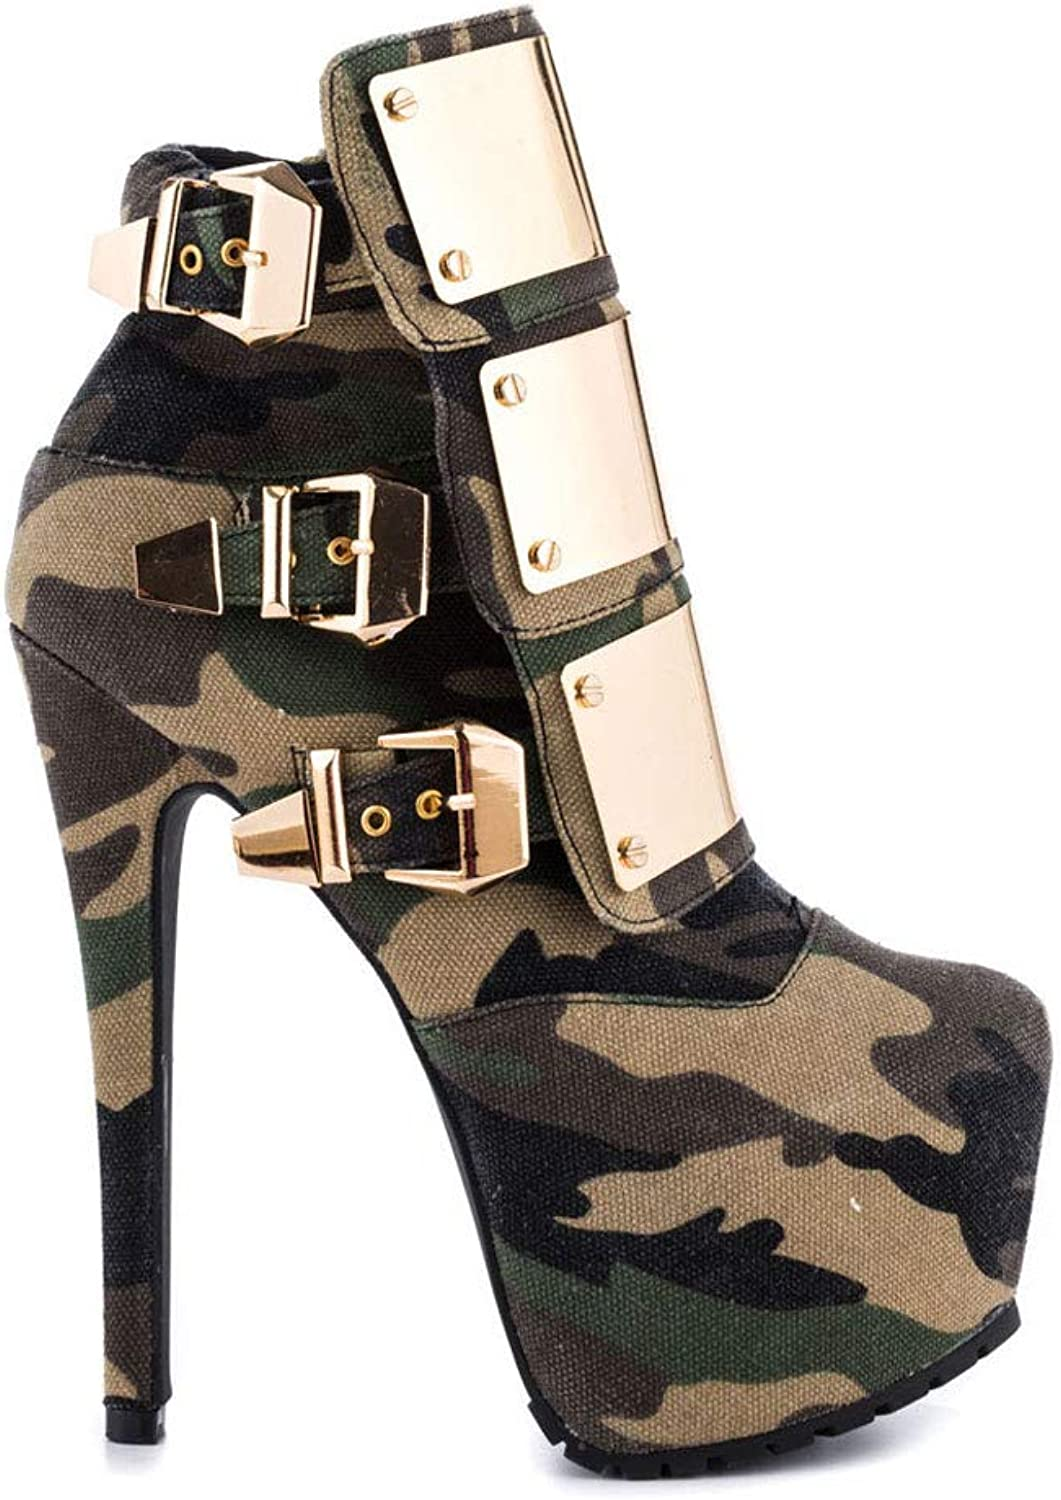 Women's High Stiletto Heels Ankle Boots Waterproof Platform Shiny Metal Buckle Short Boots Camouflage Round Head Side Zipper Rivets Non-Slip Adult Boots